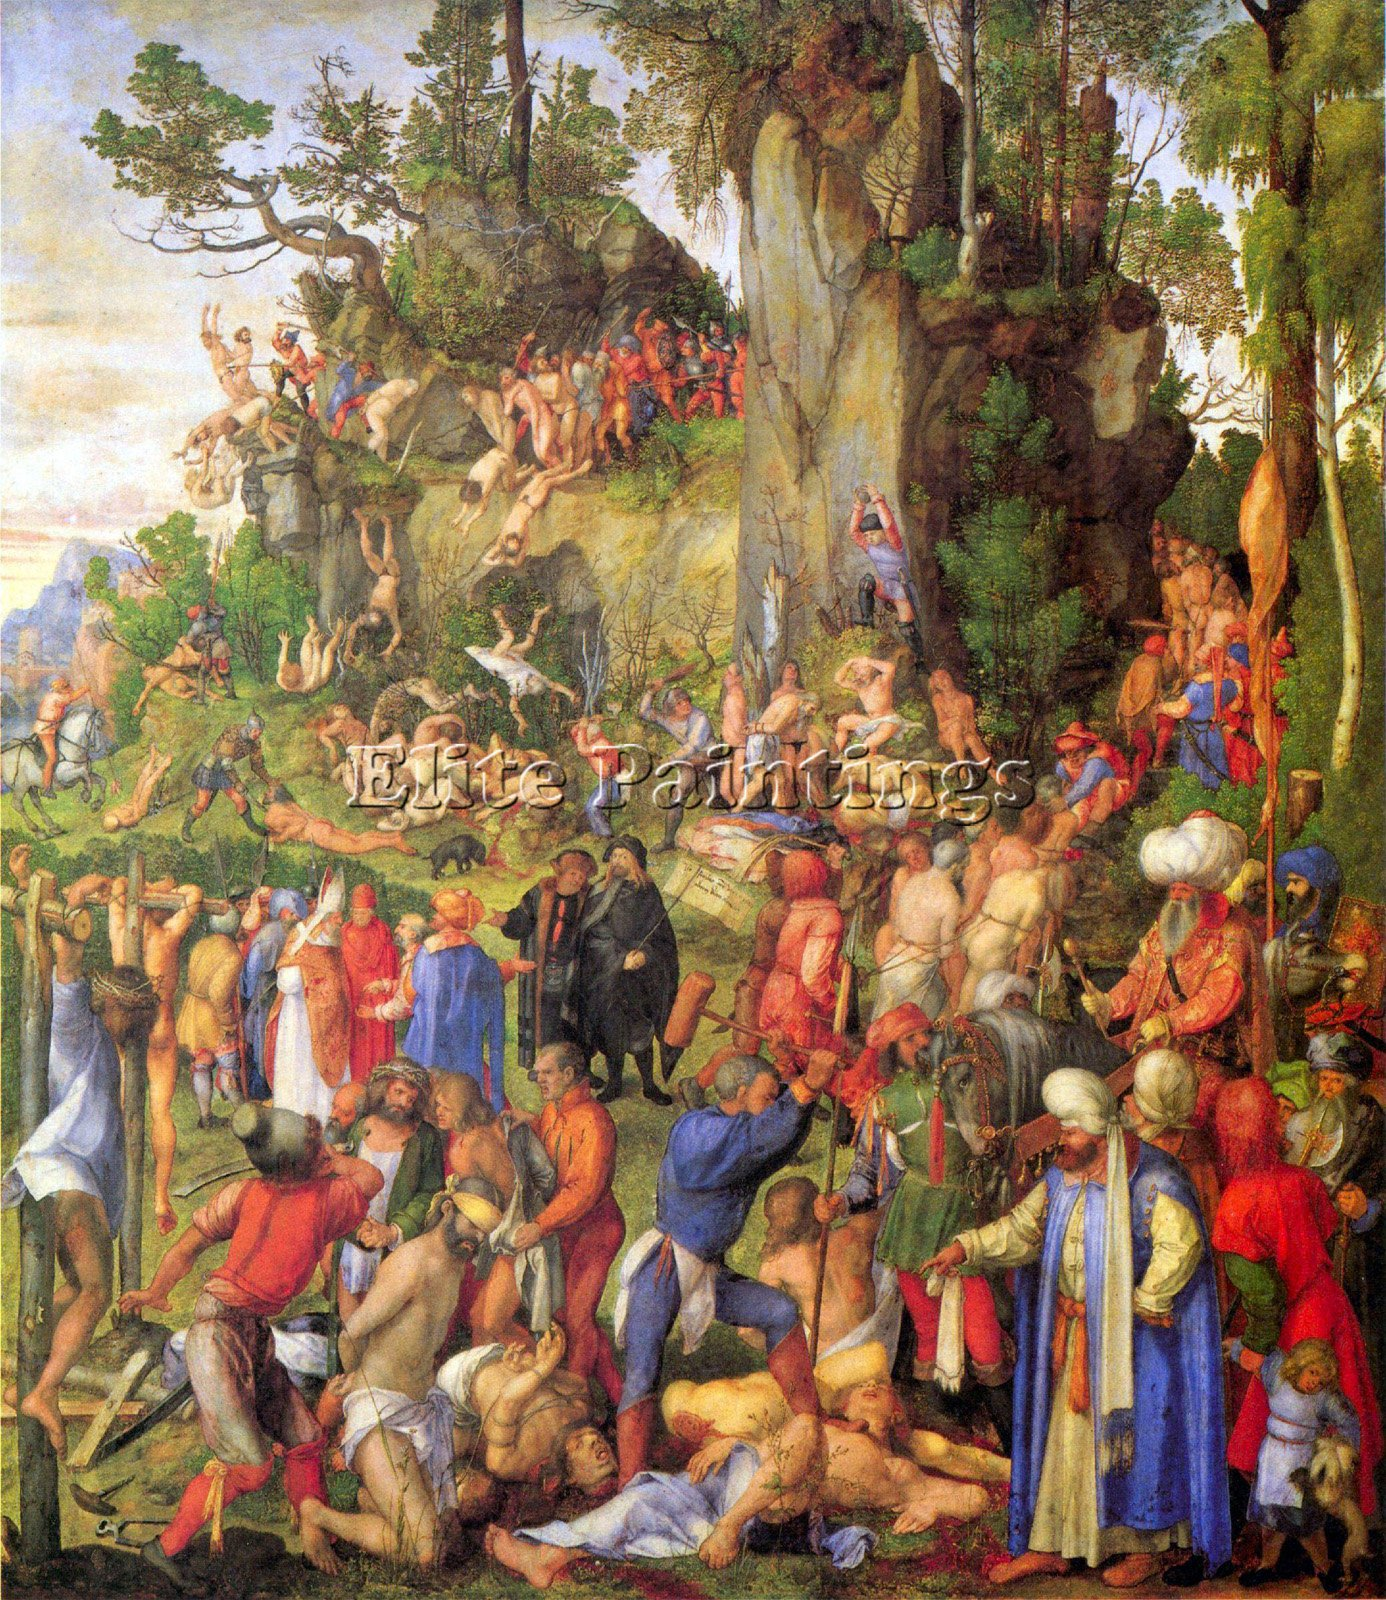 MARTYRDOM TEN THOUSAND CHRISTIANS DURER ARTIST PAINTING OIL CANVAS REPRO ART 48x40inch MUSEUM QUALITY by Elite-Paintings